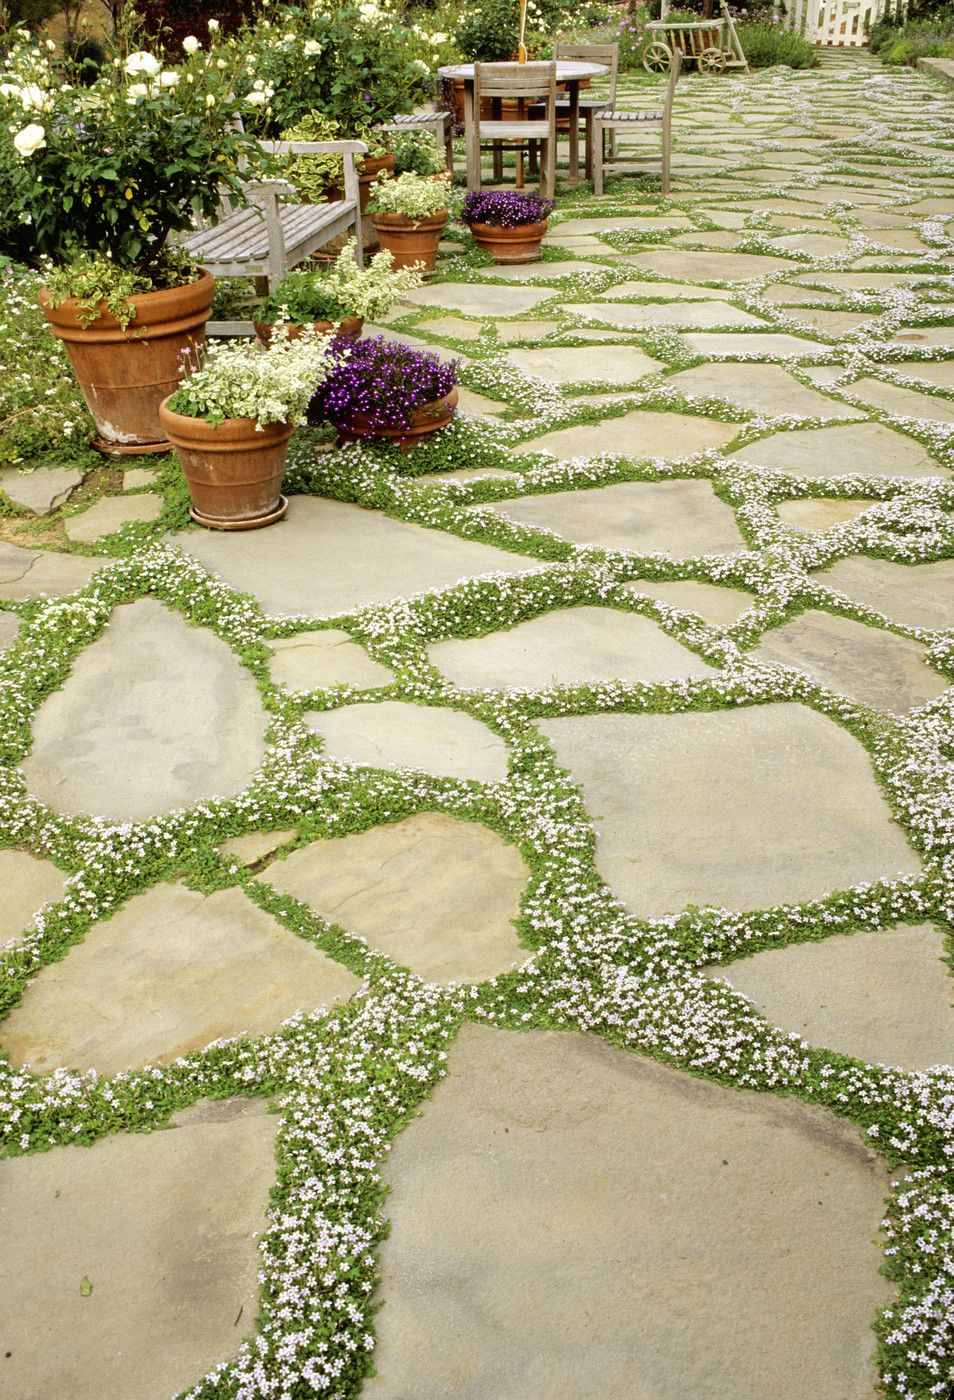 How to plant ground cover between pavers - Love The Thyme Planted In Between These Pavers For Low Maintenance Beauty I Like The Idea Of Low Maintenance Beauty But Would Like Crushed Granite Between